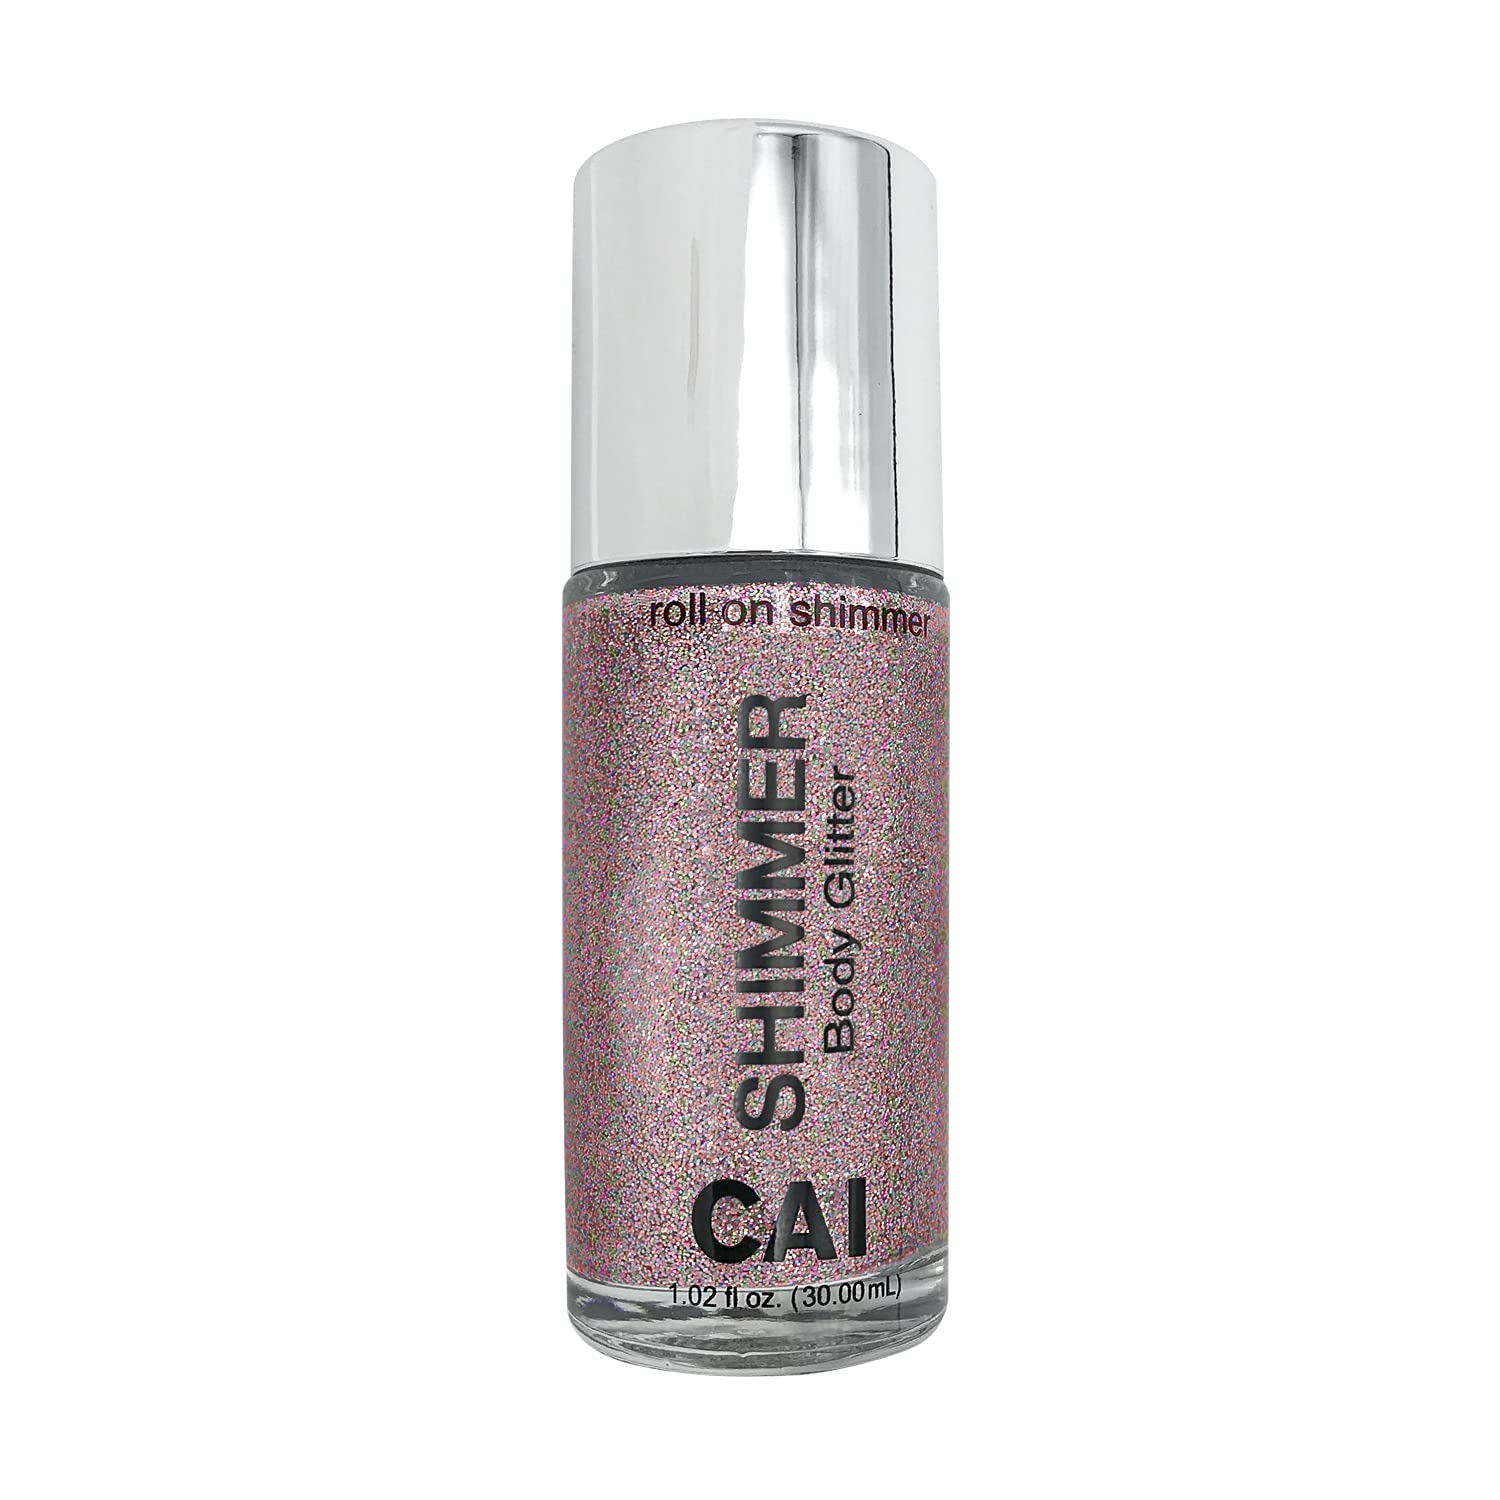 CAI Beauty NYC Rose Gold Pink Glitter | Easy to Apply, Easy to Remove | Roll On Shimmer for Body, Face and Hair | Holographic Cosmetic Grade Glamour : Beauty & Personal Care